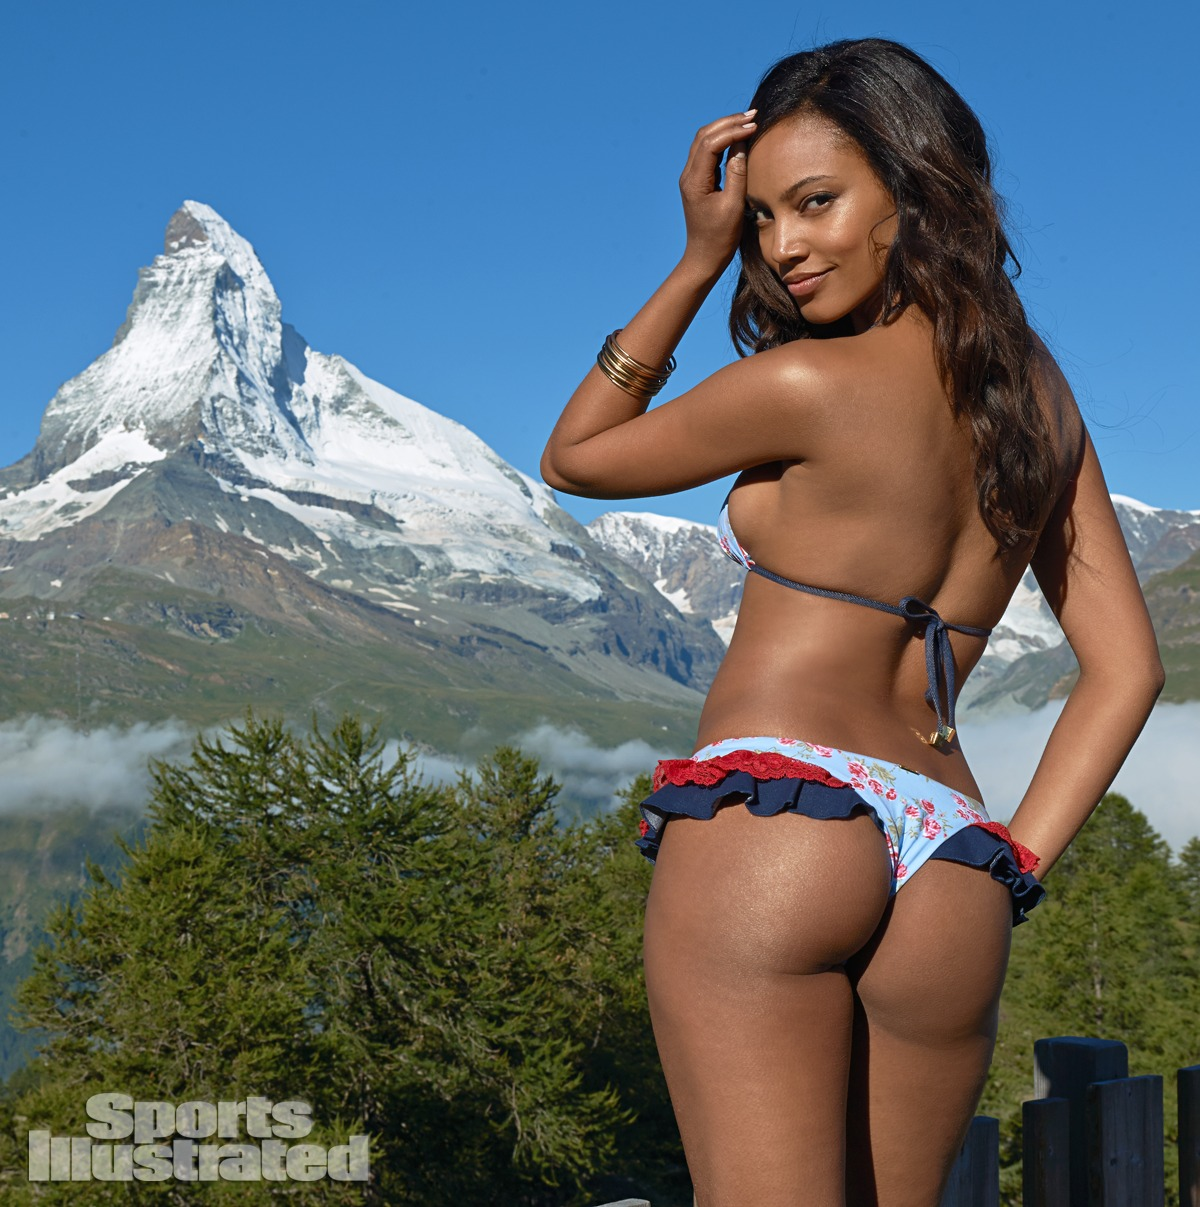 Ariel Meredith was photographed by Yu Tsai in Switzerland. Swimsuit by Beach Bunny Swimwear.